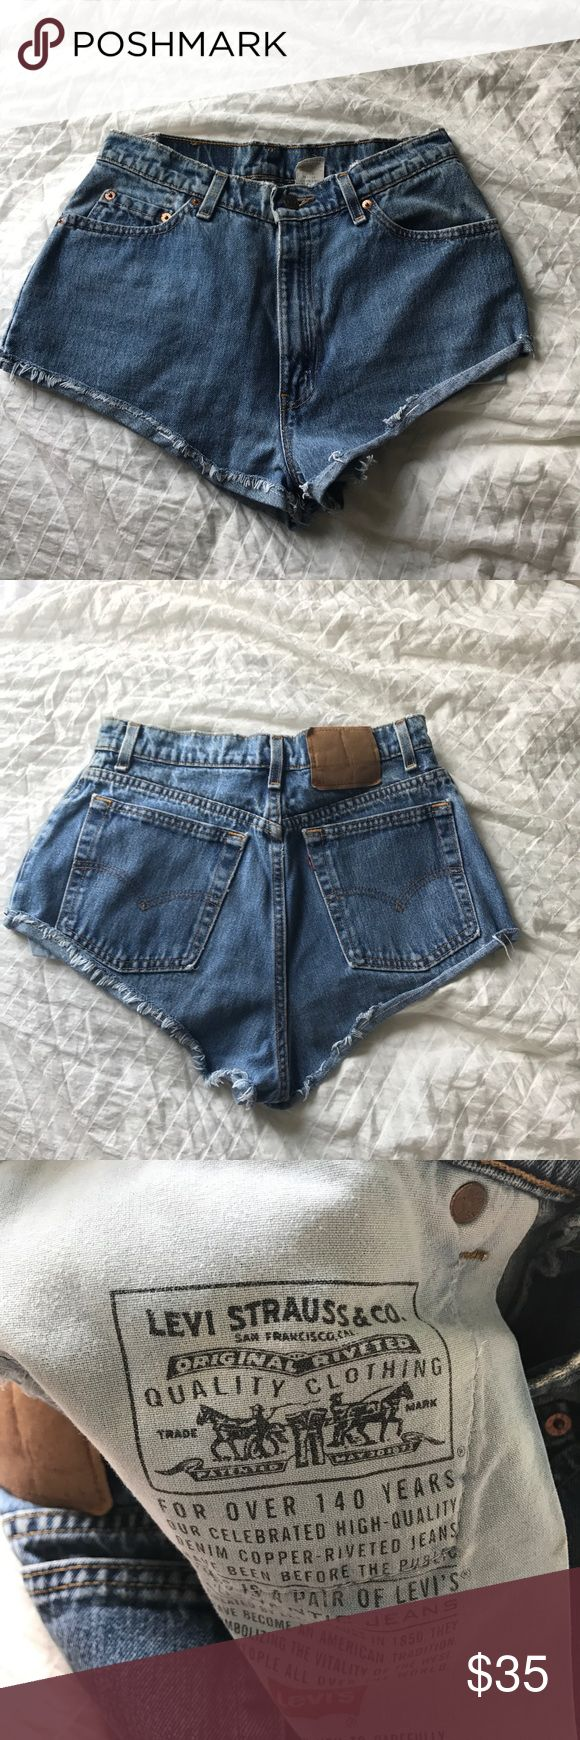 LEVIS Vintage Cheeky Cut Off Shorts High waisted, cheeky, cut off Levi jean shorts. No stains & great condition. Final price & no trades, please. Levi's Shorts Jean Shorts